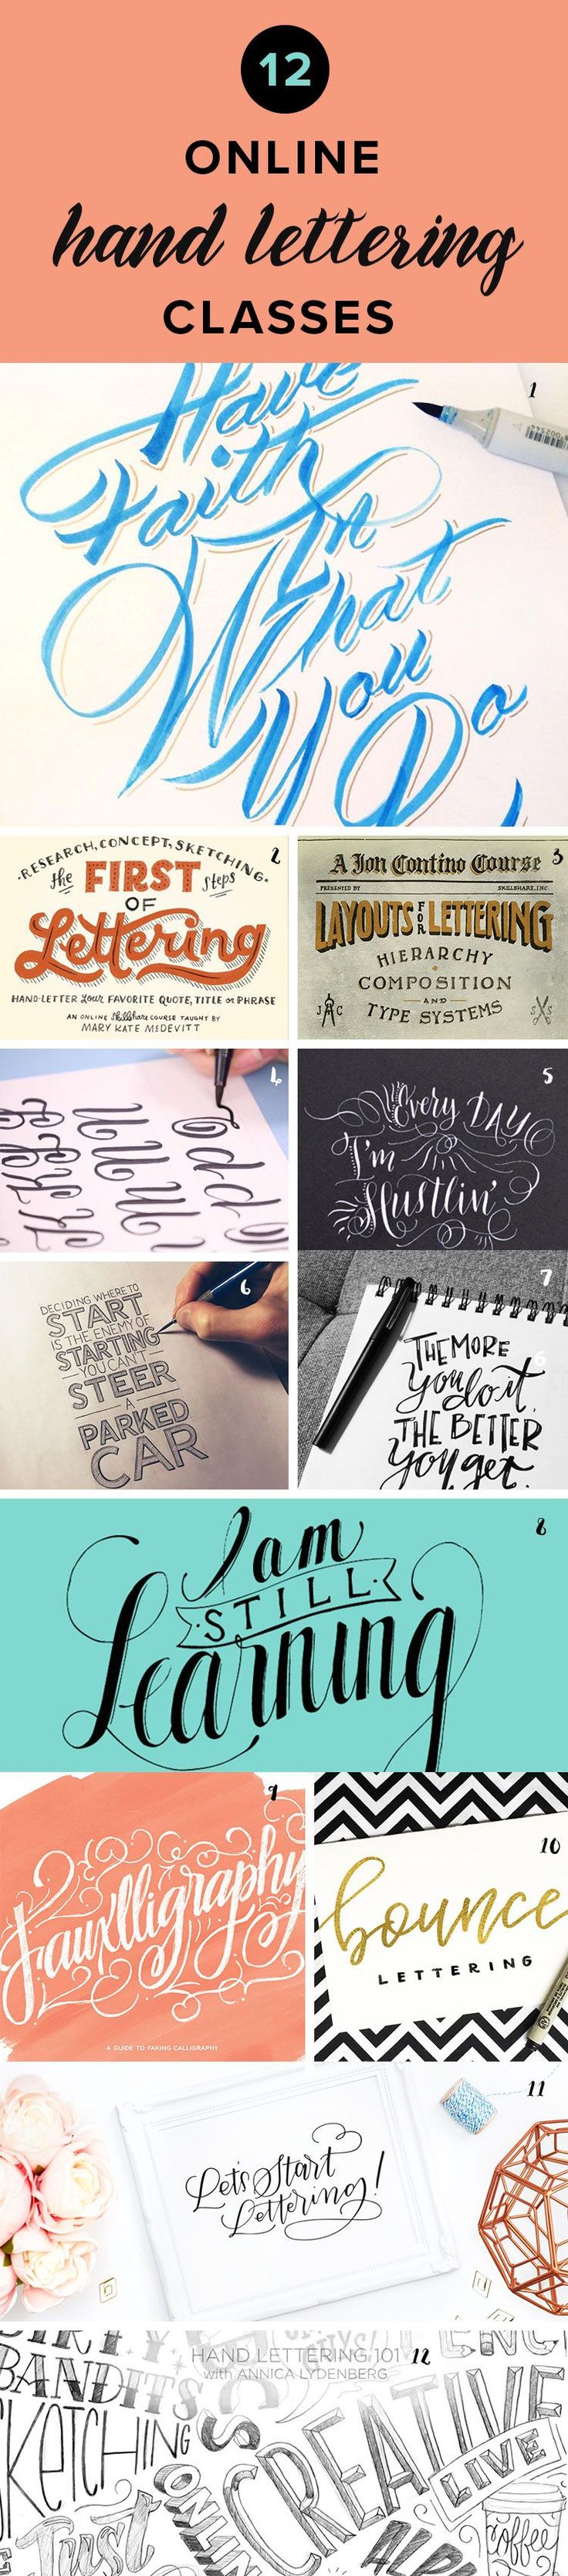 Want to learn hand lettering? Check out these awesome online classes that will teach you everything you need to know